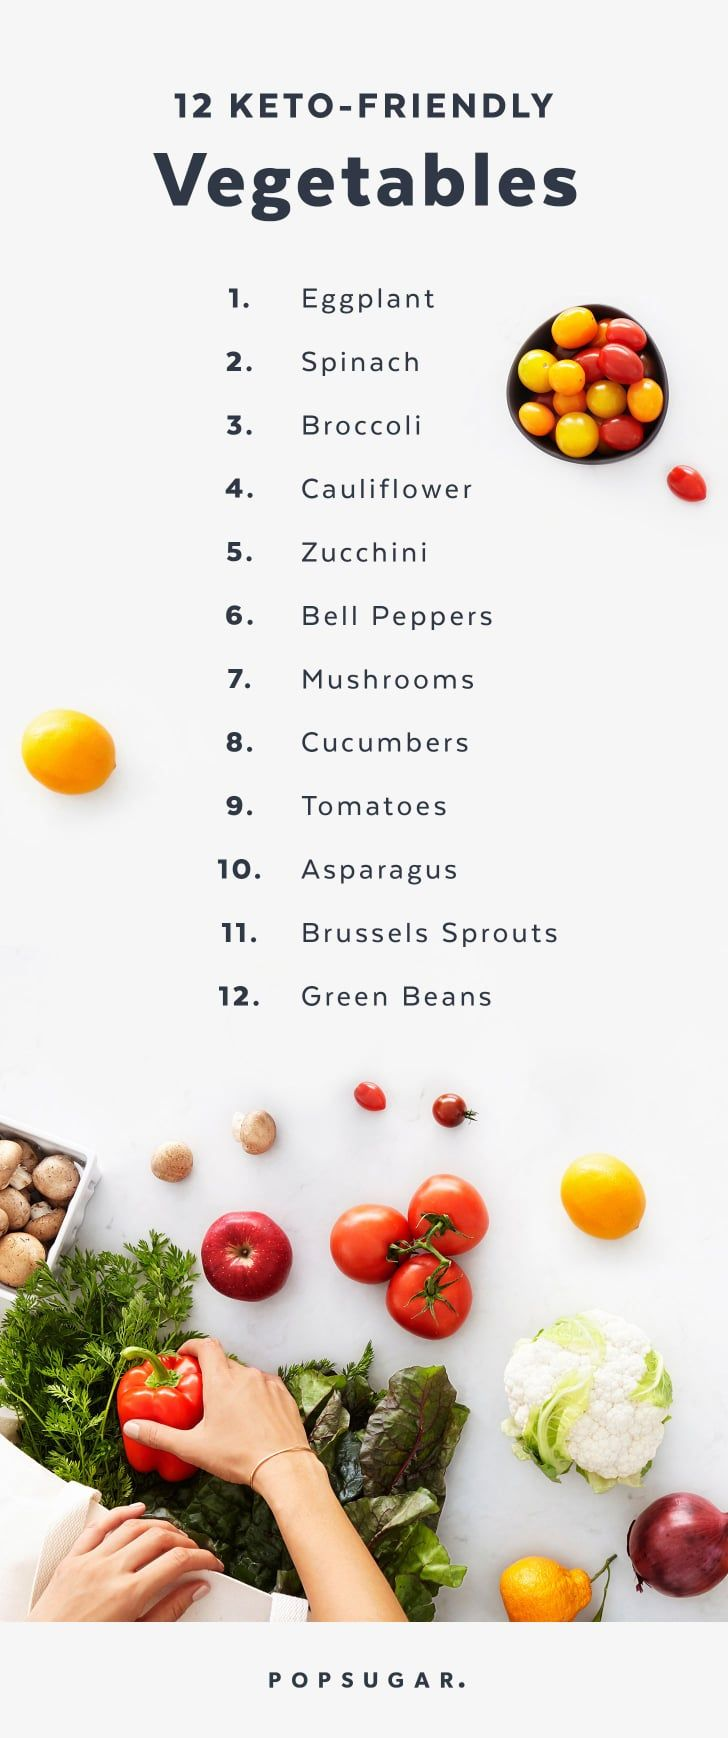 12 Low Carb Vegetables You Can Eat While On The Keto Diet Low Carb Vegetables List Low Carb Vegetables Low Carb Diet Recipes